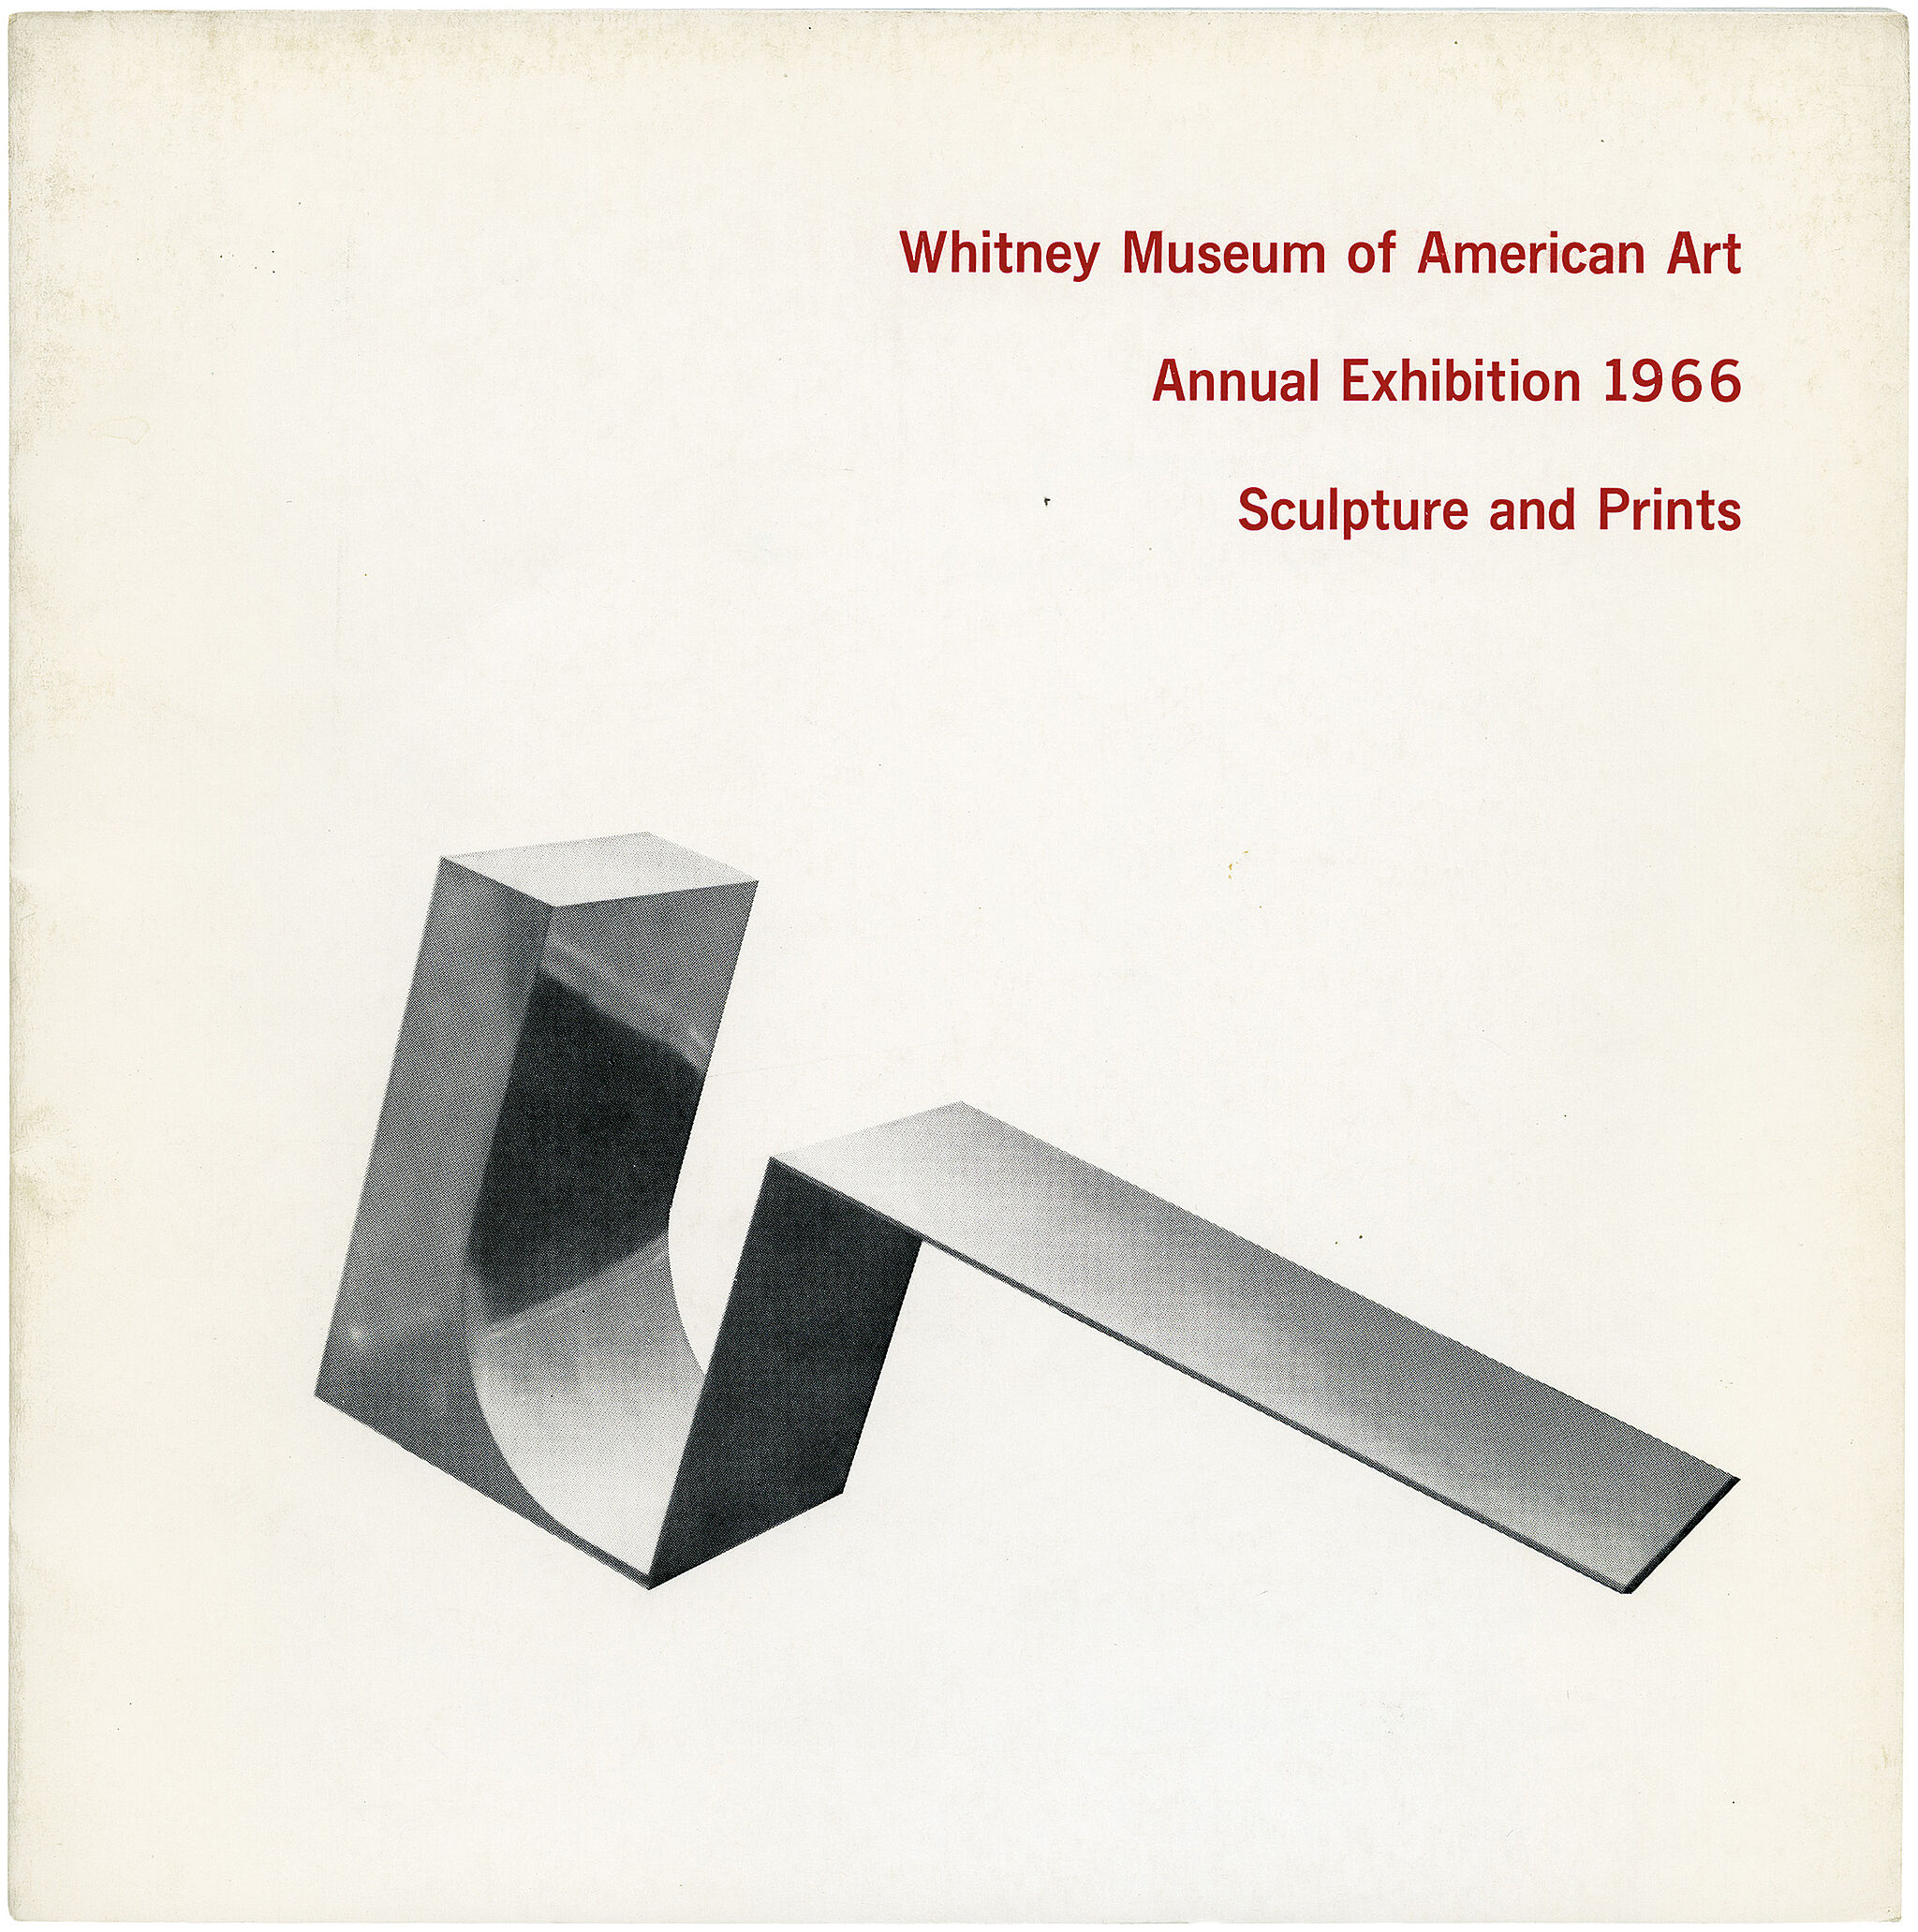 Catalogue cover for Annual Exhibition 1966: Contemporary Sculpture and Prints